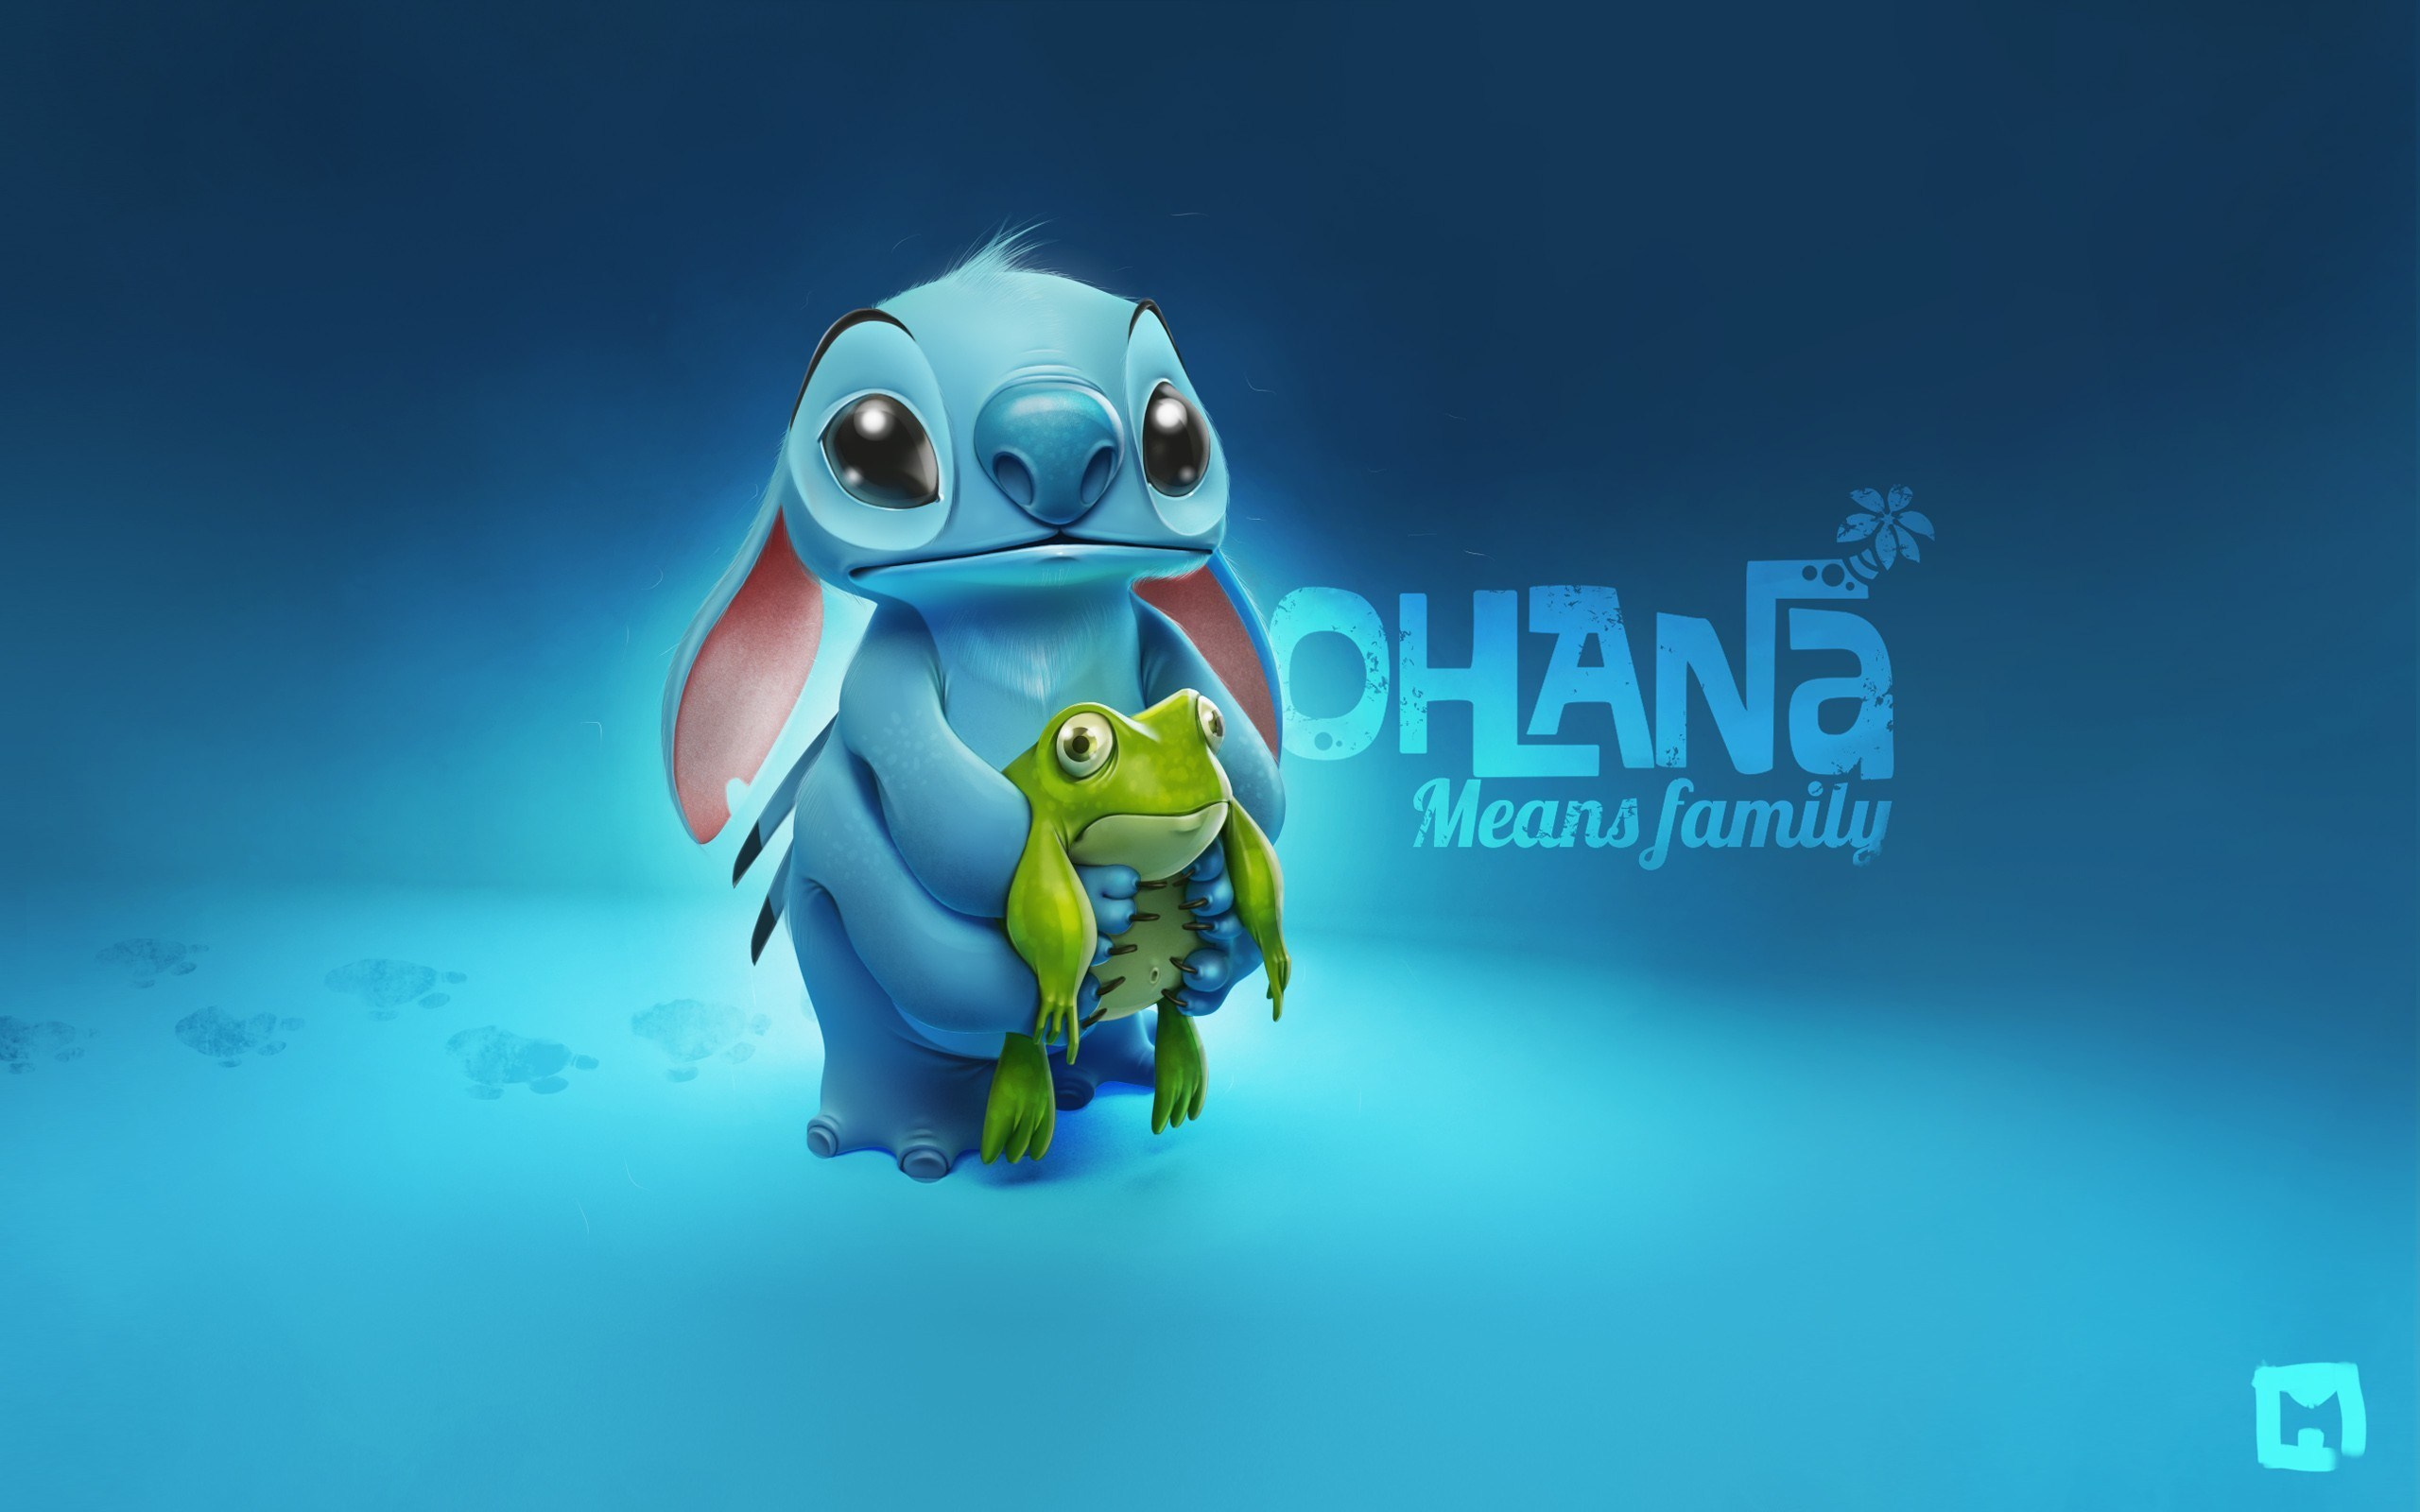 lilo and stitch Computer Wallpapers Desktop Backgrounds 2560x1600